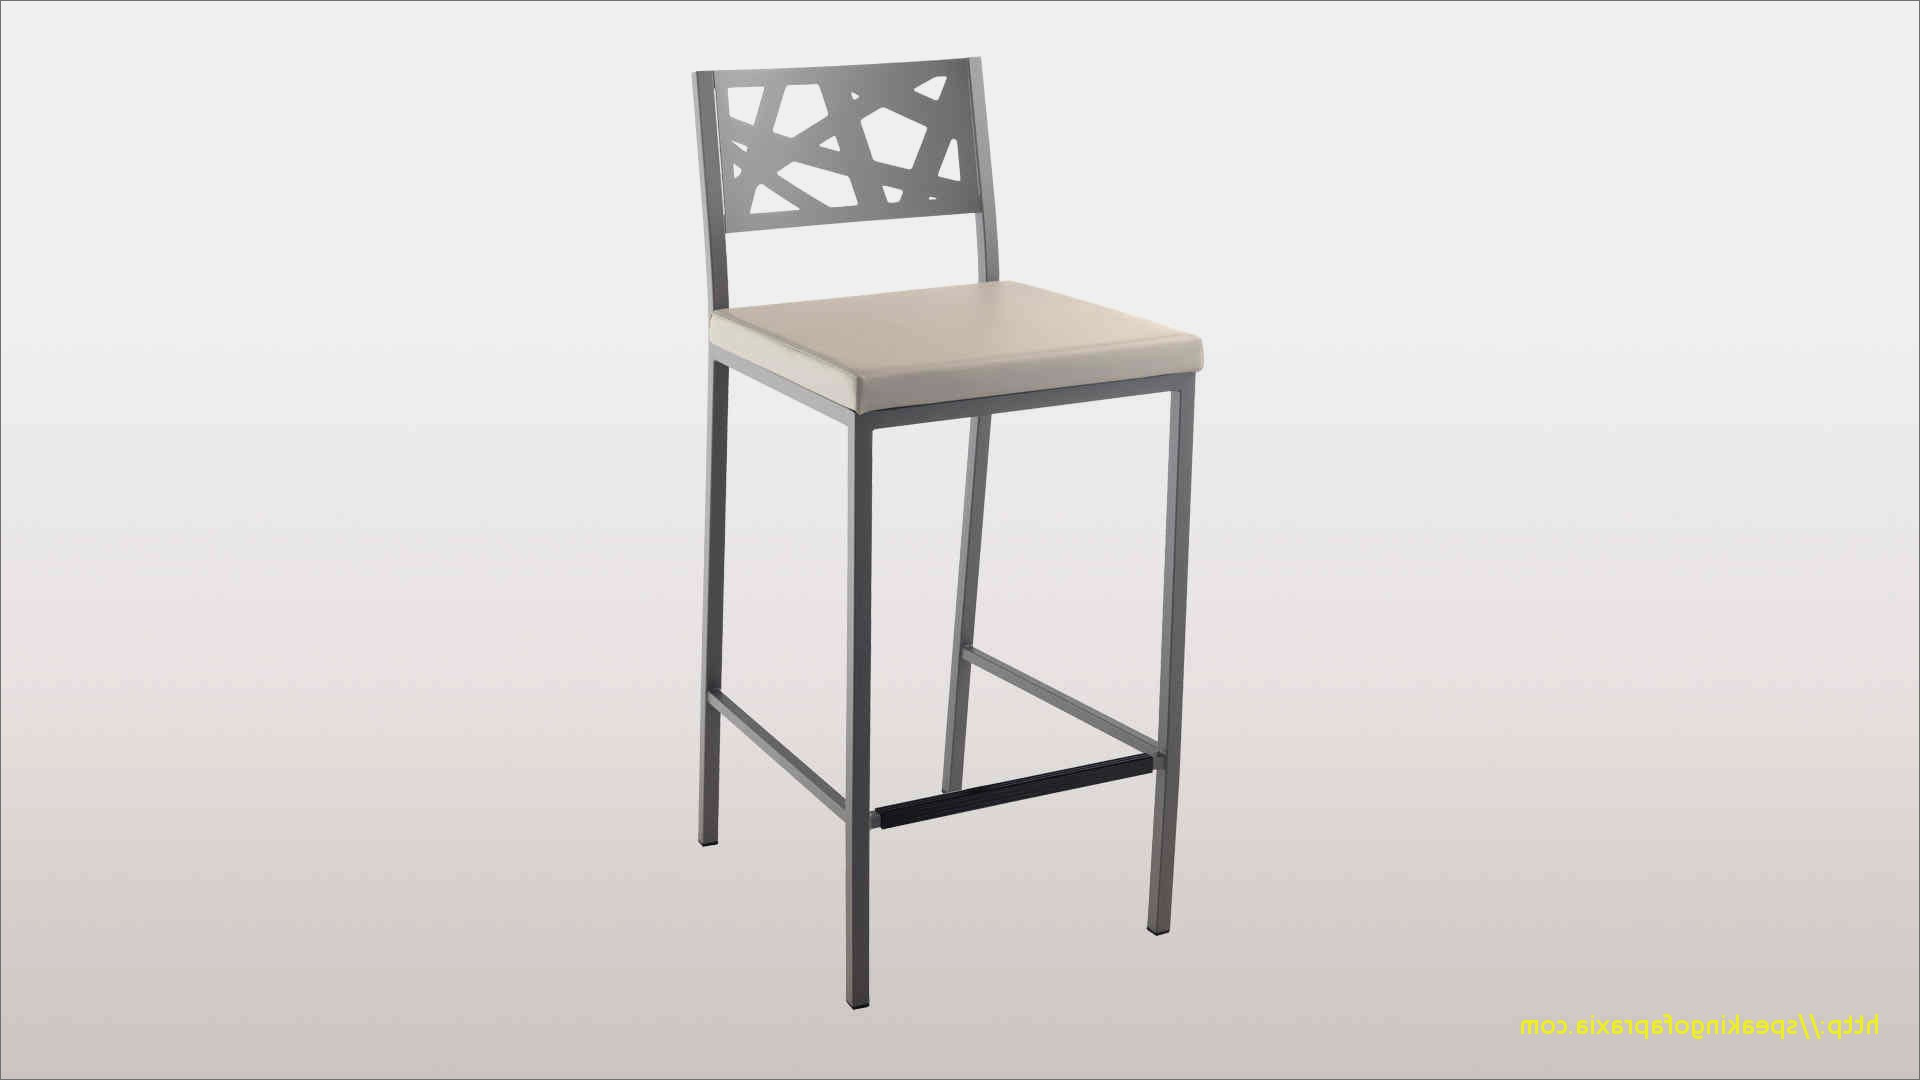 tabouret de bar design avec dossier id e pour la maison et cuisine. Black Bedroom Furniture Sets. Home Design Ideas